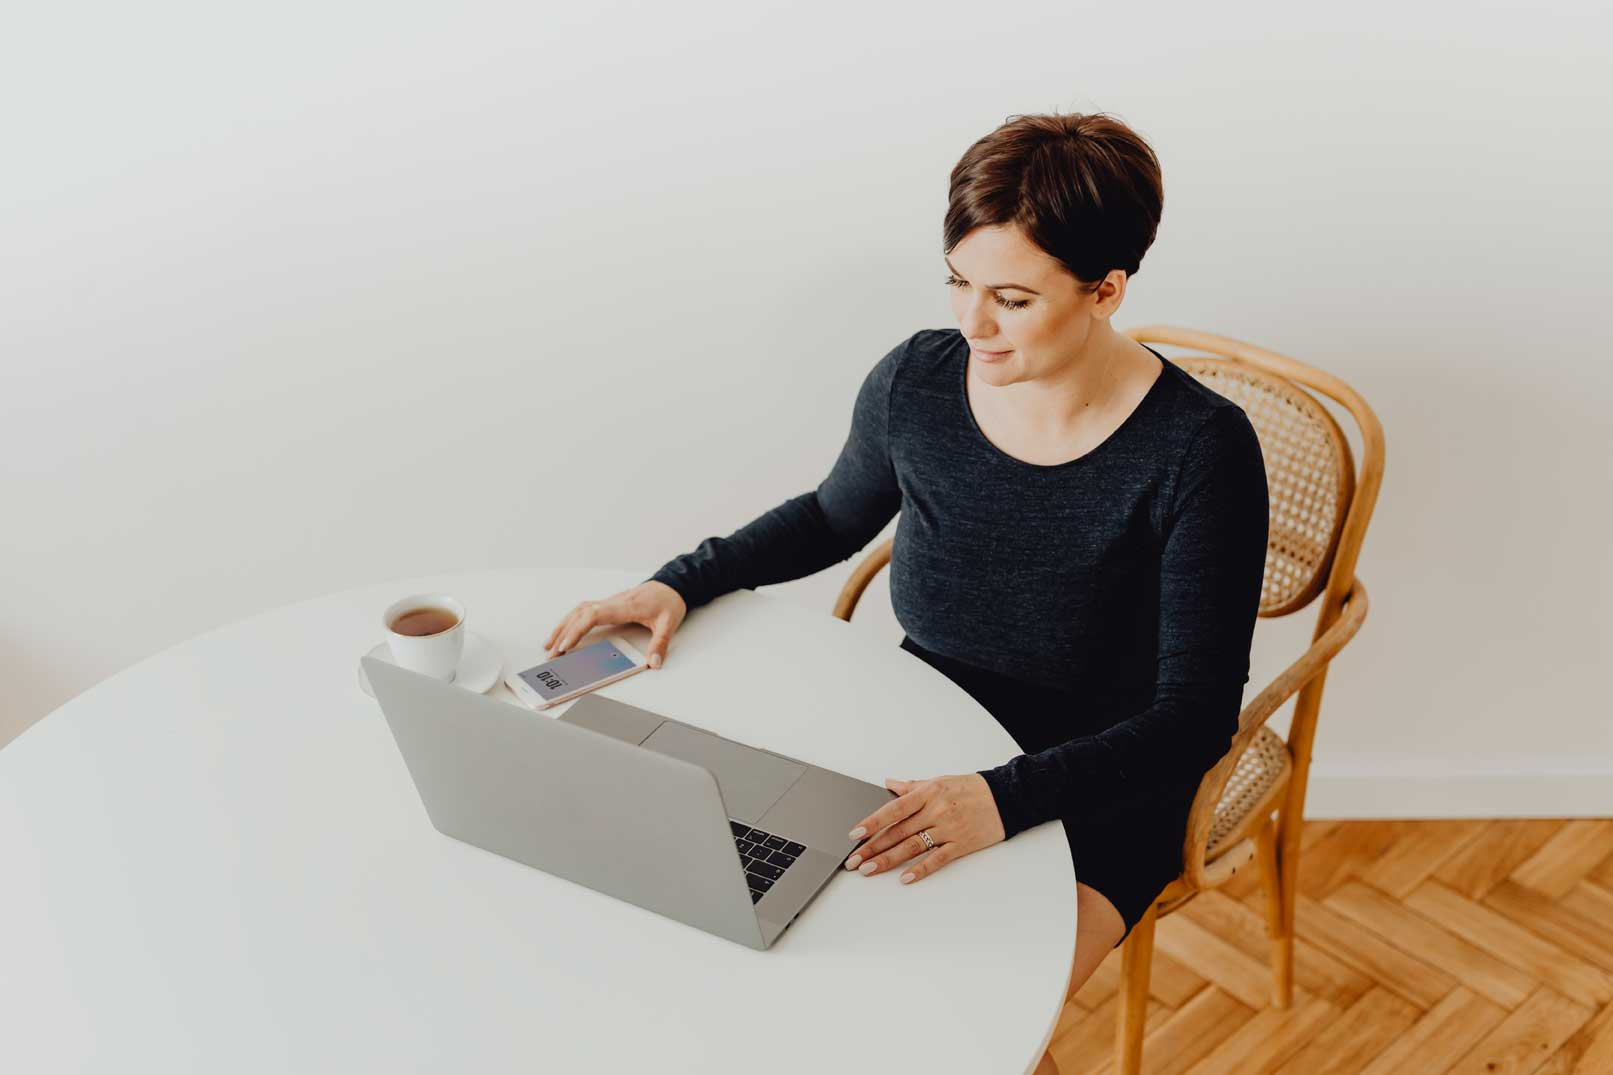 Possible Legal Issues With Telecommuting